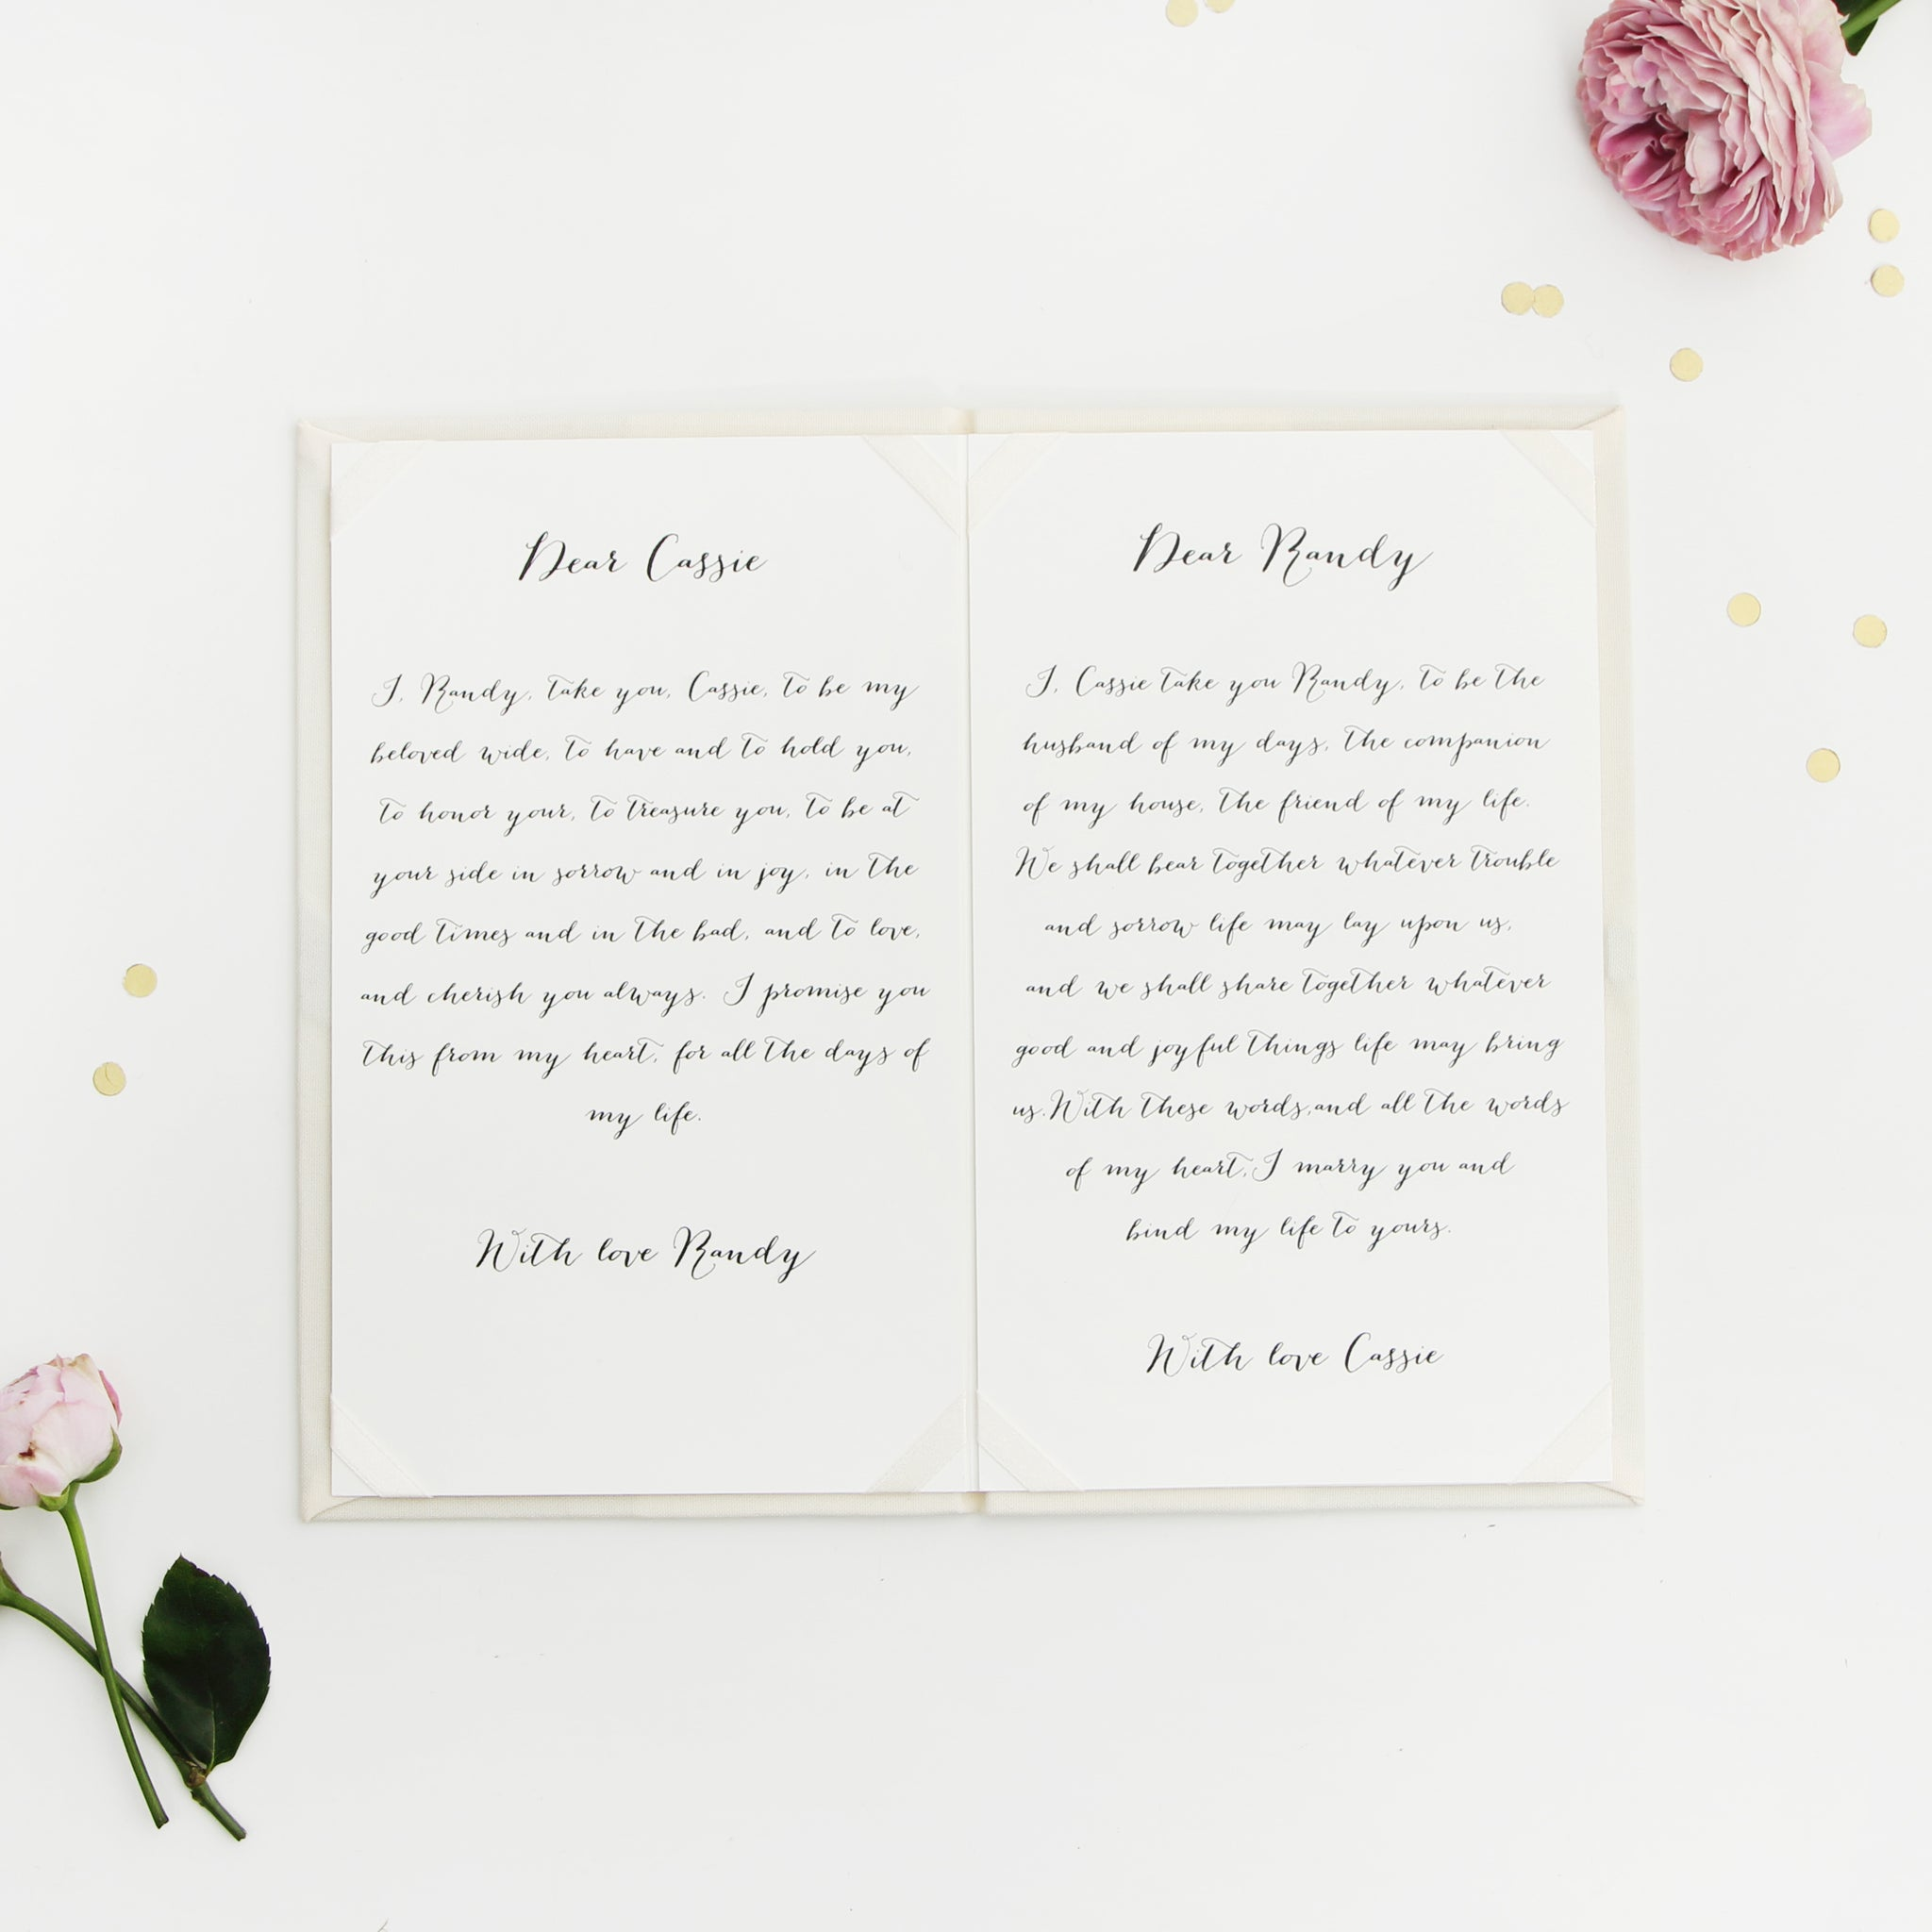 Personalised Wedding Ivory Vow Books Gold Foil Keepsake Calligraphy Vows Bride and Groom Ceremony